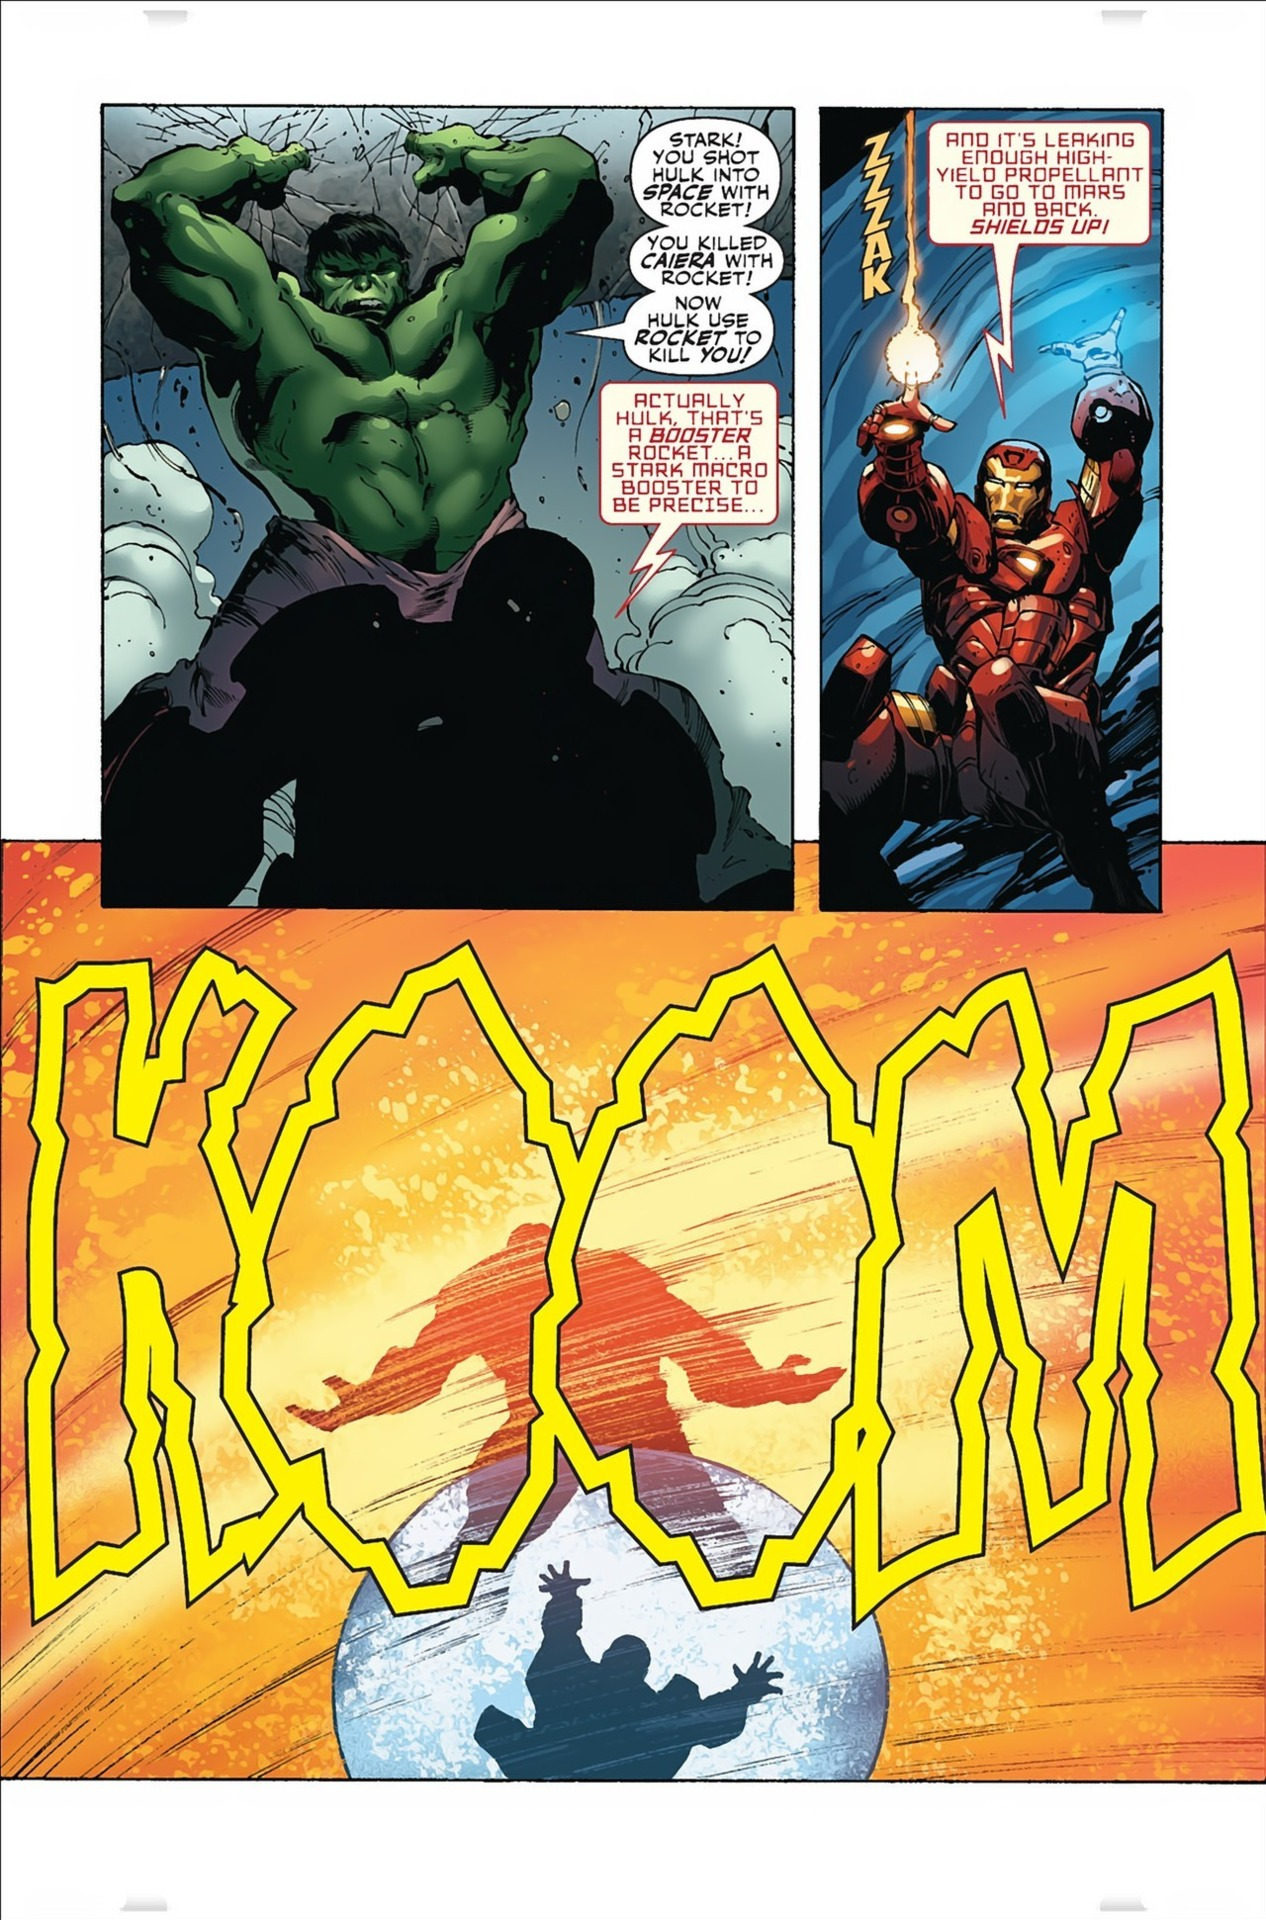 He reacts to and uses his shields to no-sell a blast that had a high enough yield propellant to go to Mars and back. This oneshotted the Hulk but I'm pretty sure it's impressive without scaling.